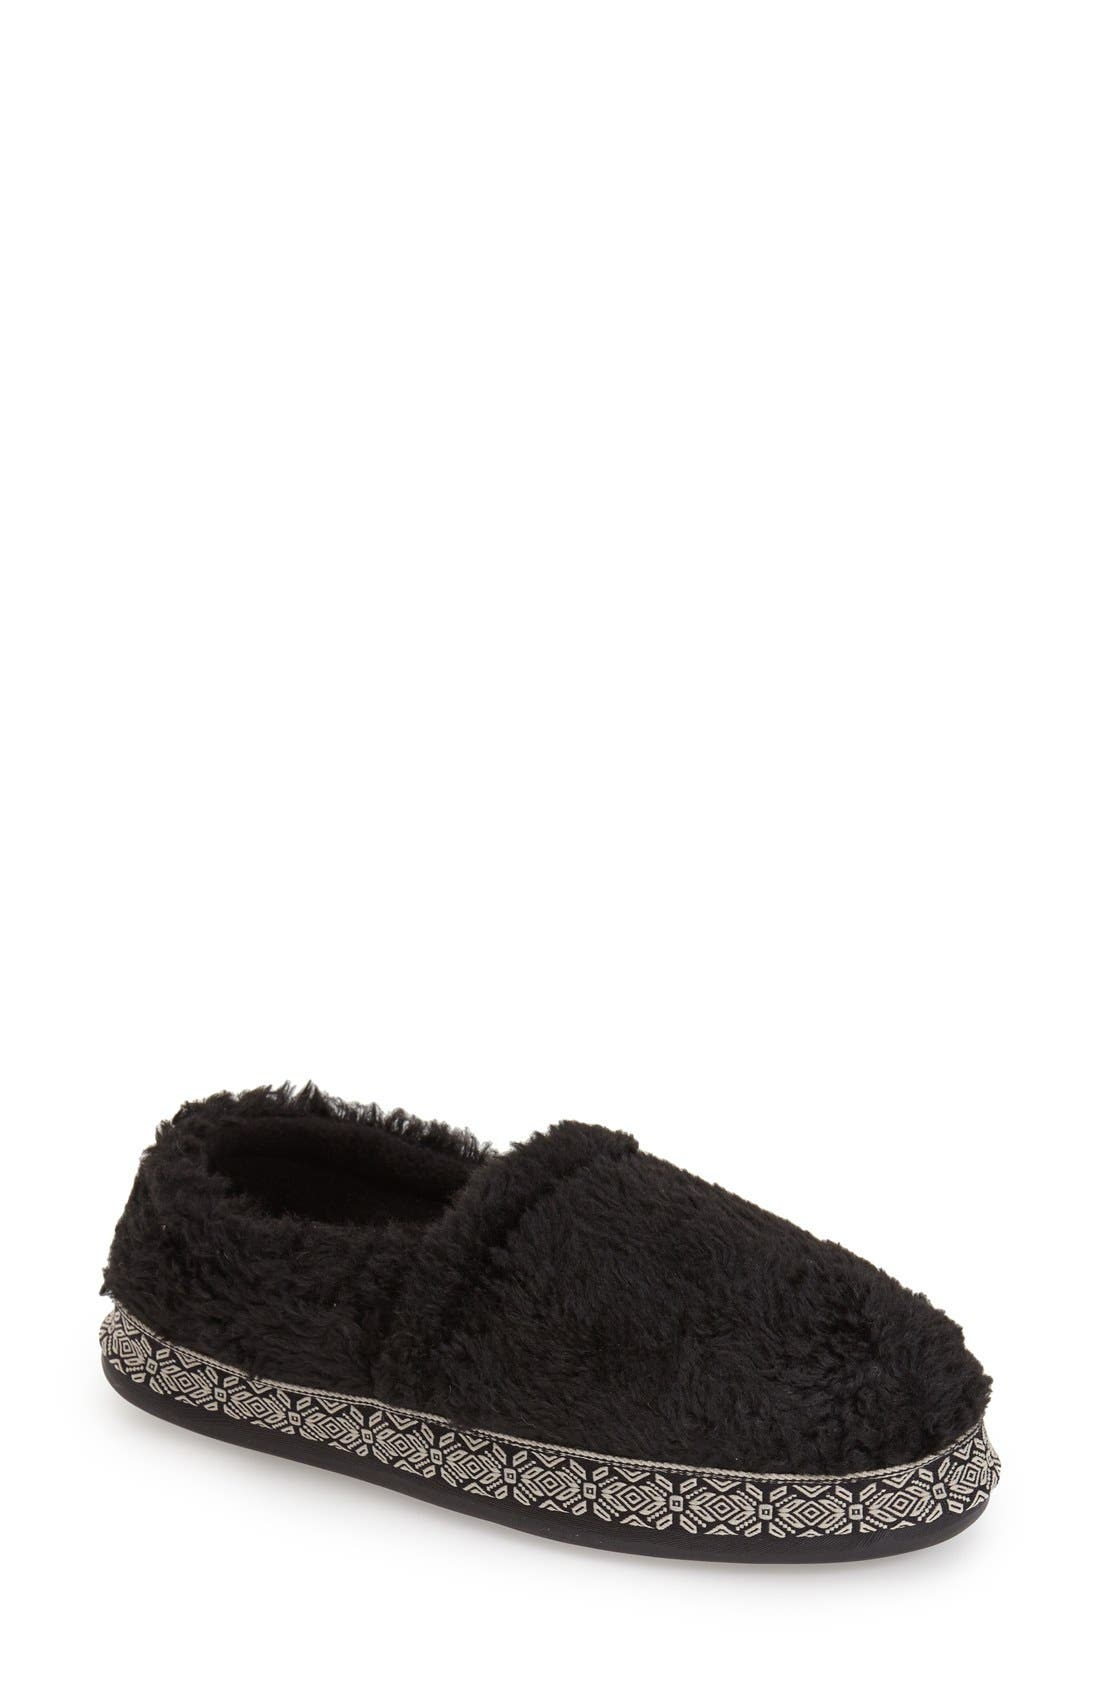 Alternate Image 1 Selected - Woolrich John Rich 'Whitecap' Slipper (Women)